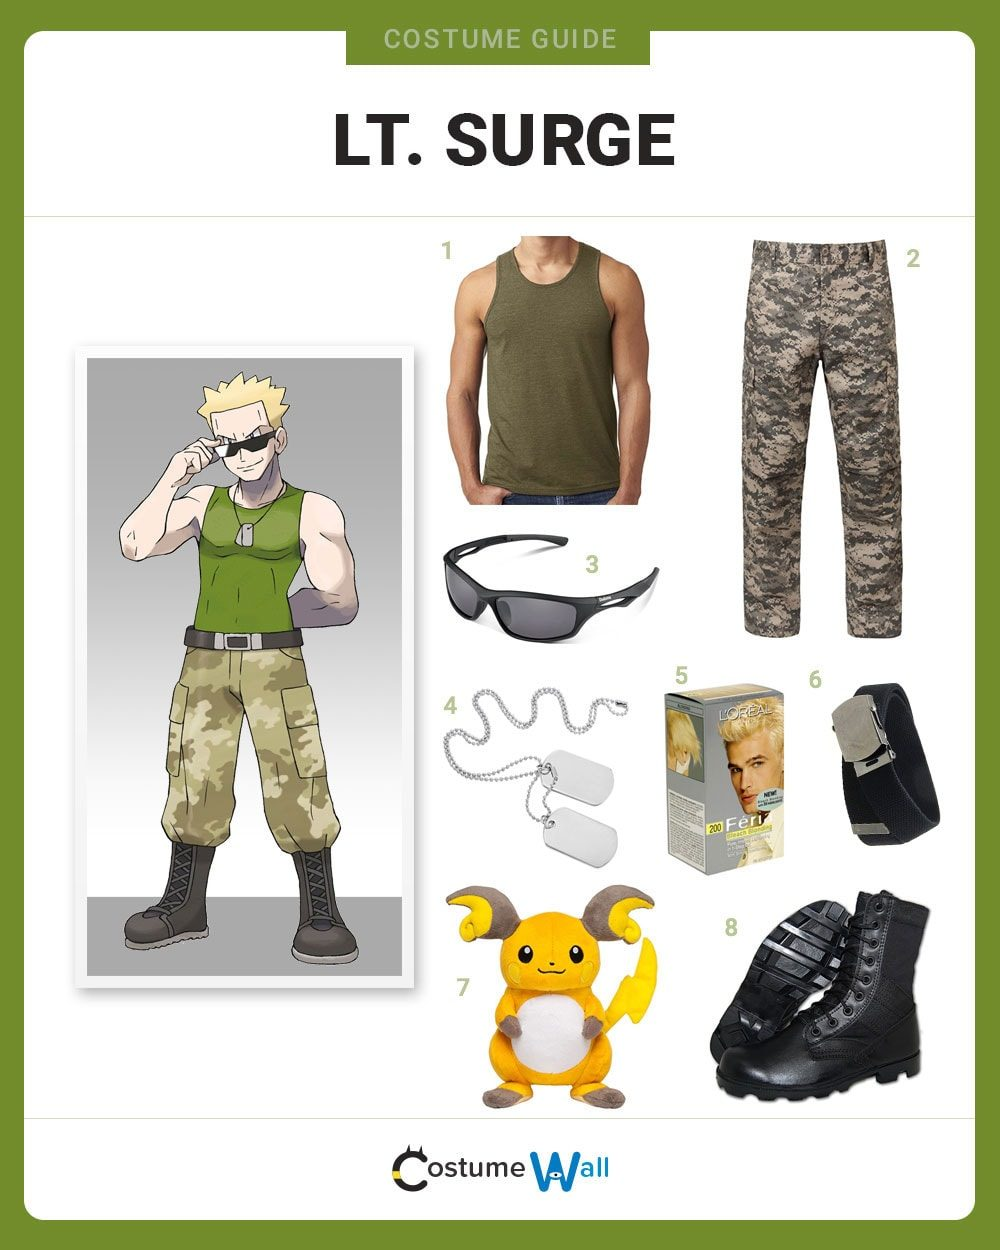 Lt. Surge Costume Guide